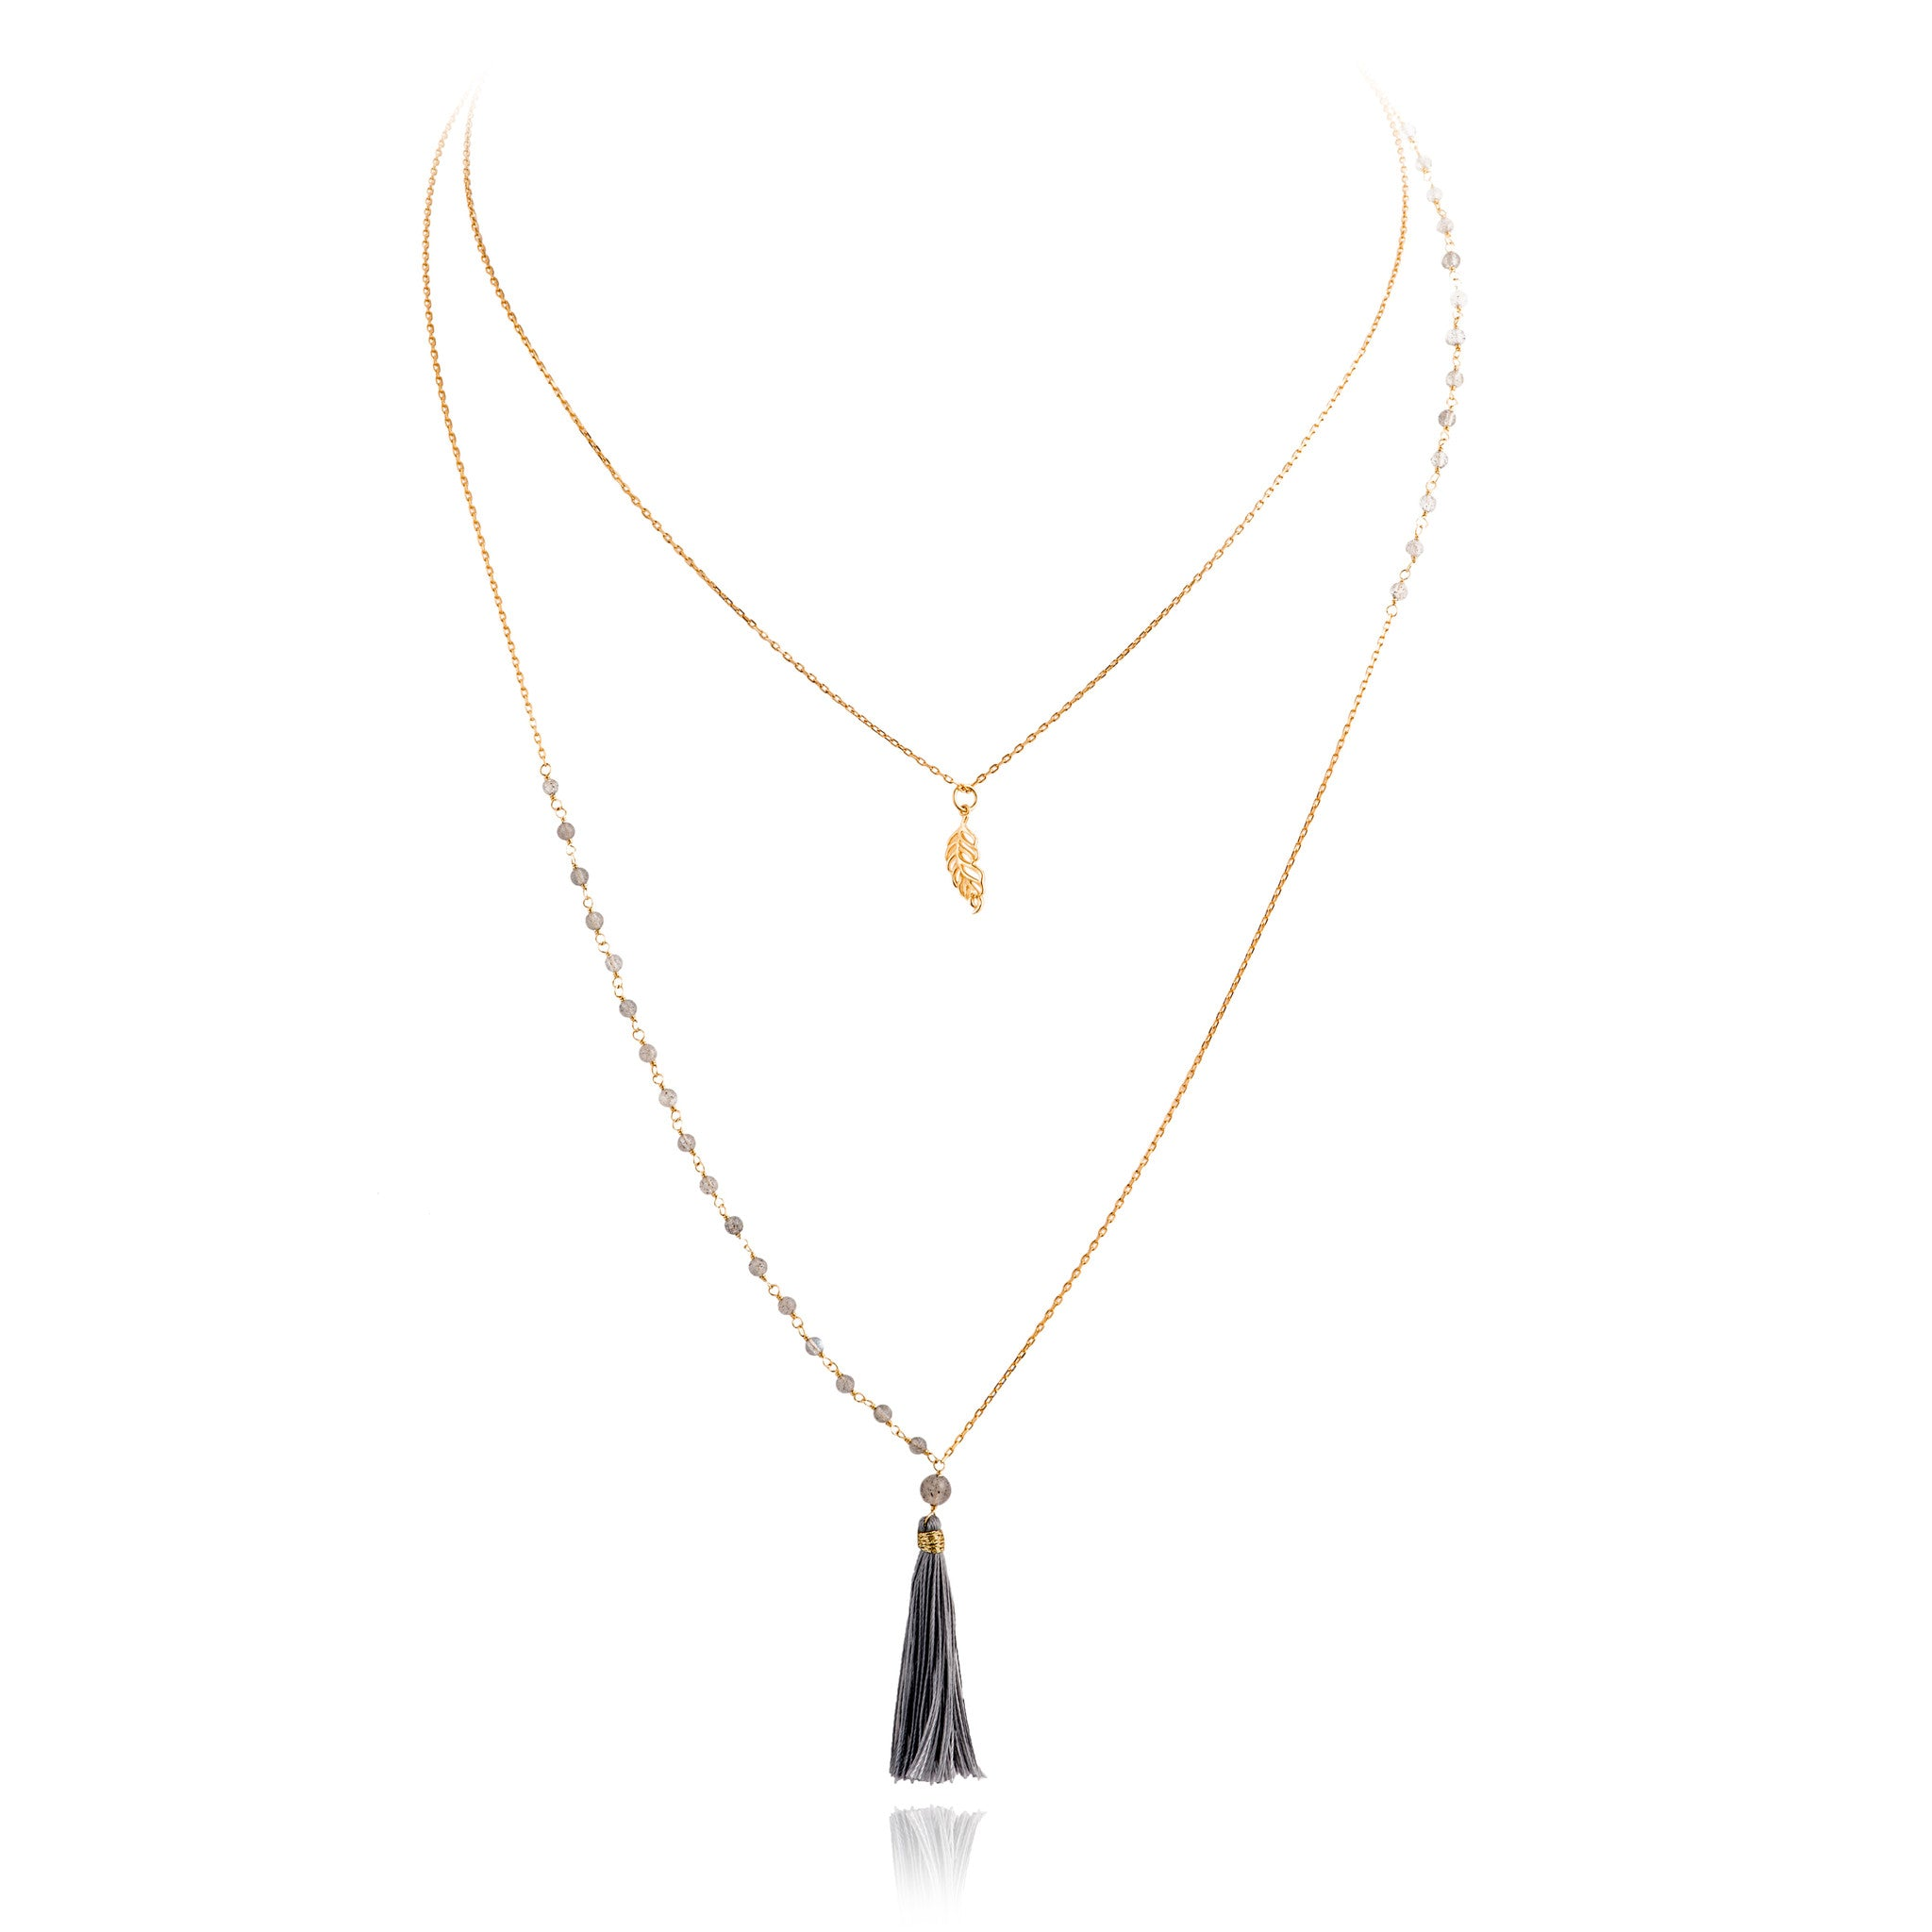 NME-12/G/LAB -  Labradorite and Chain Necklace with Tassel